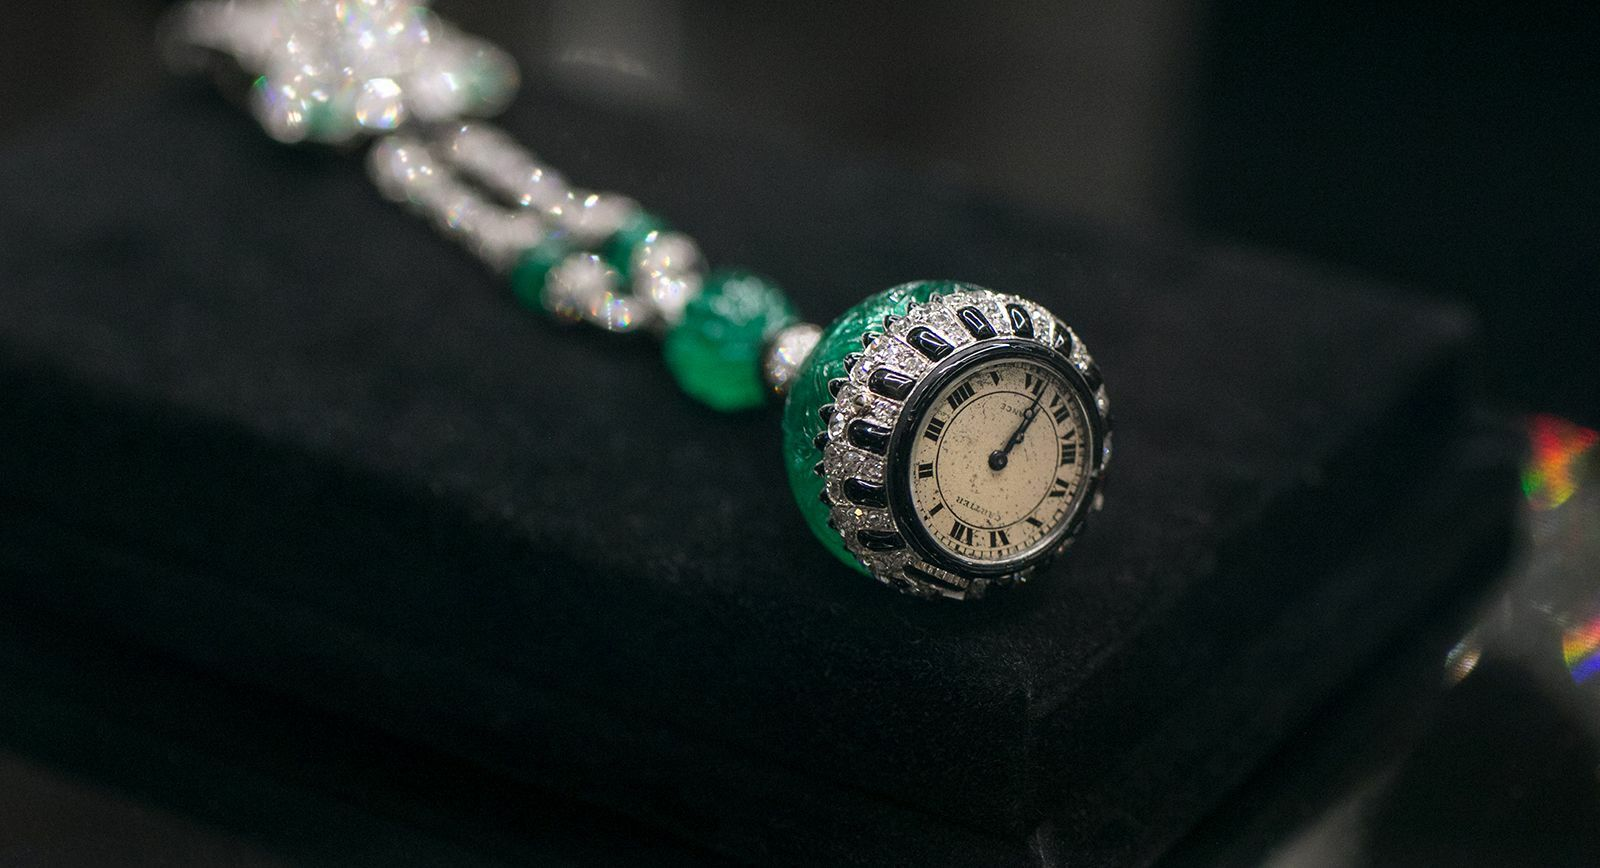 Christie's 'Maharajas & Mughal Magnificence' Cartier lapel watch with emerald, diamond, onyx and enamel